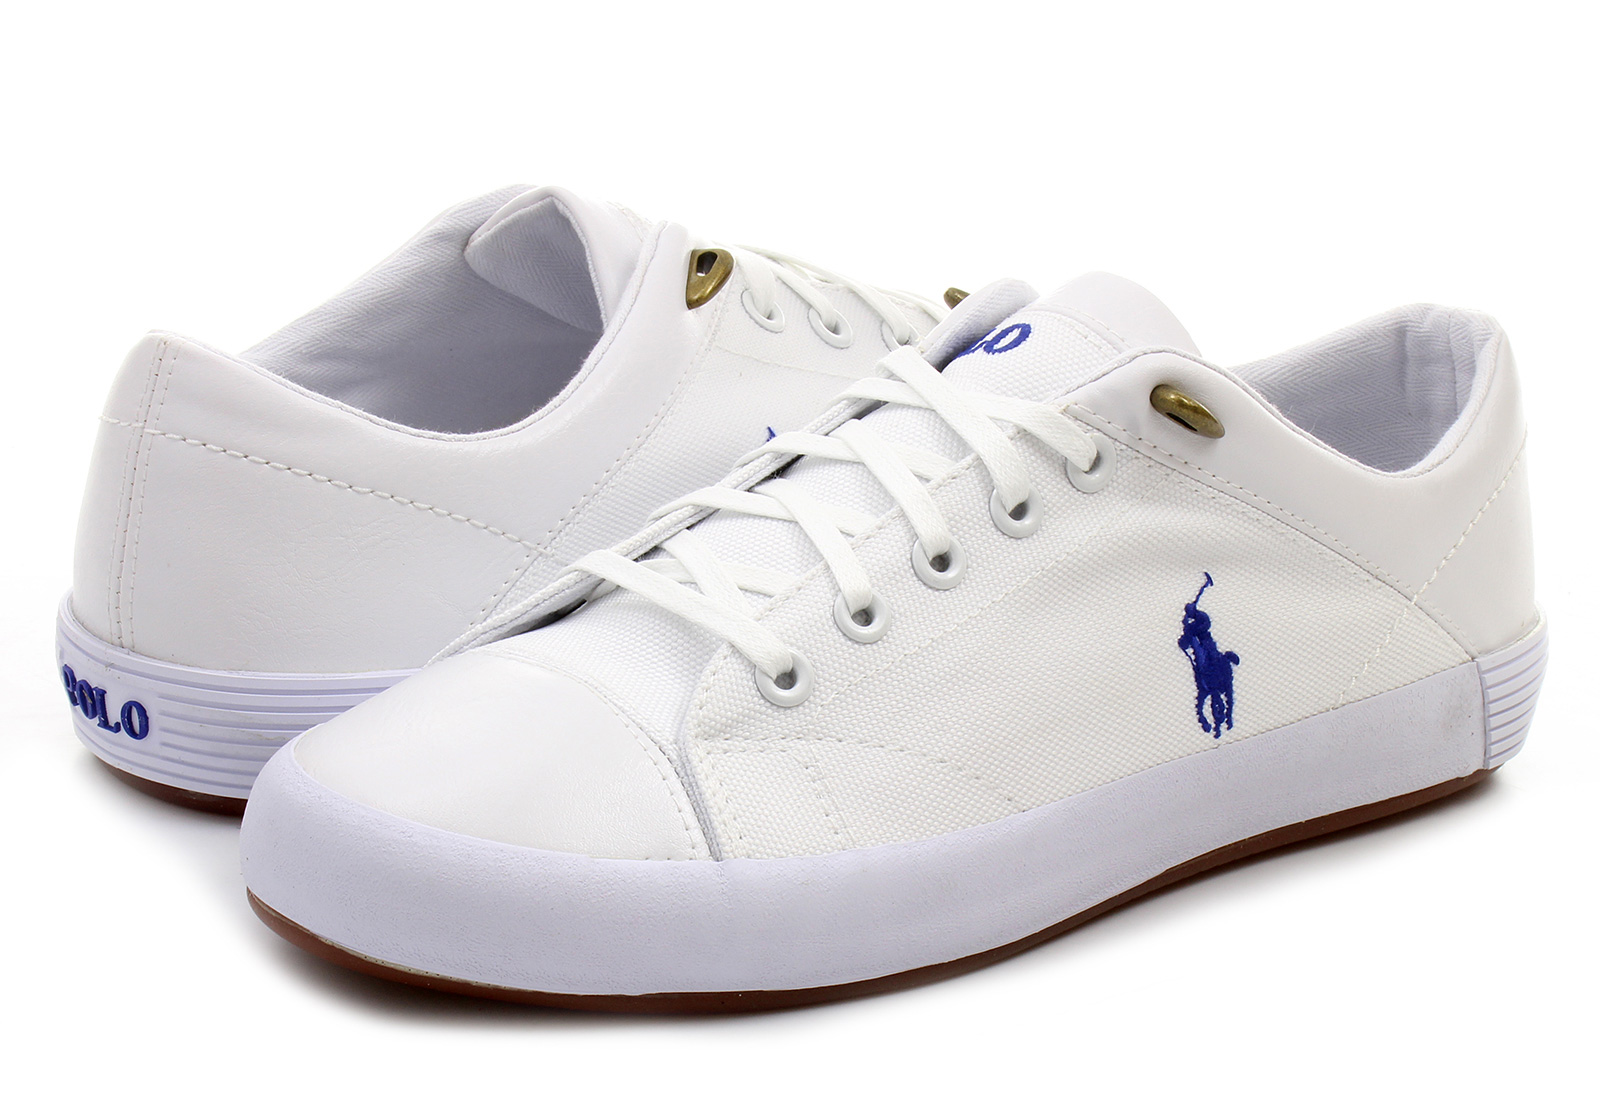 polo ralph lauren shoes jerom 2061 c a1557 online shop for sneakers shoes and boots. Black Bedroom Furniture Sets. Home Design Ideas